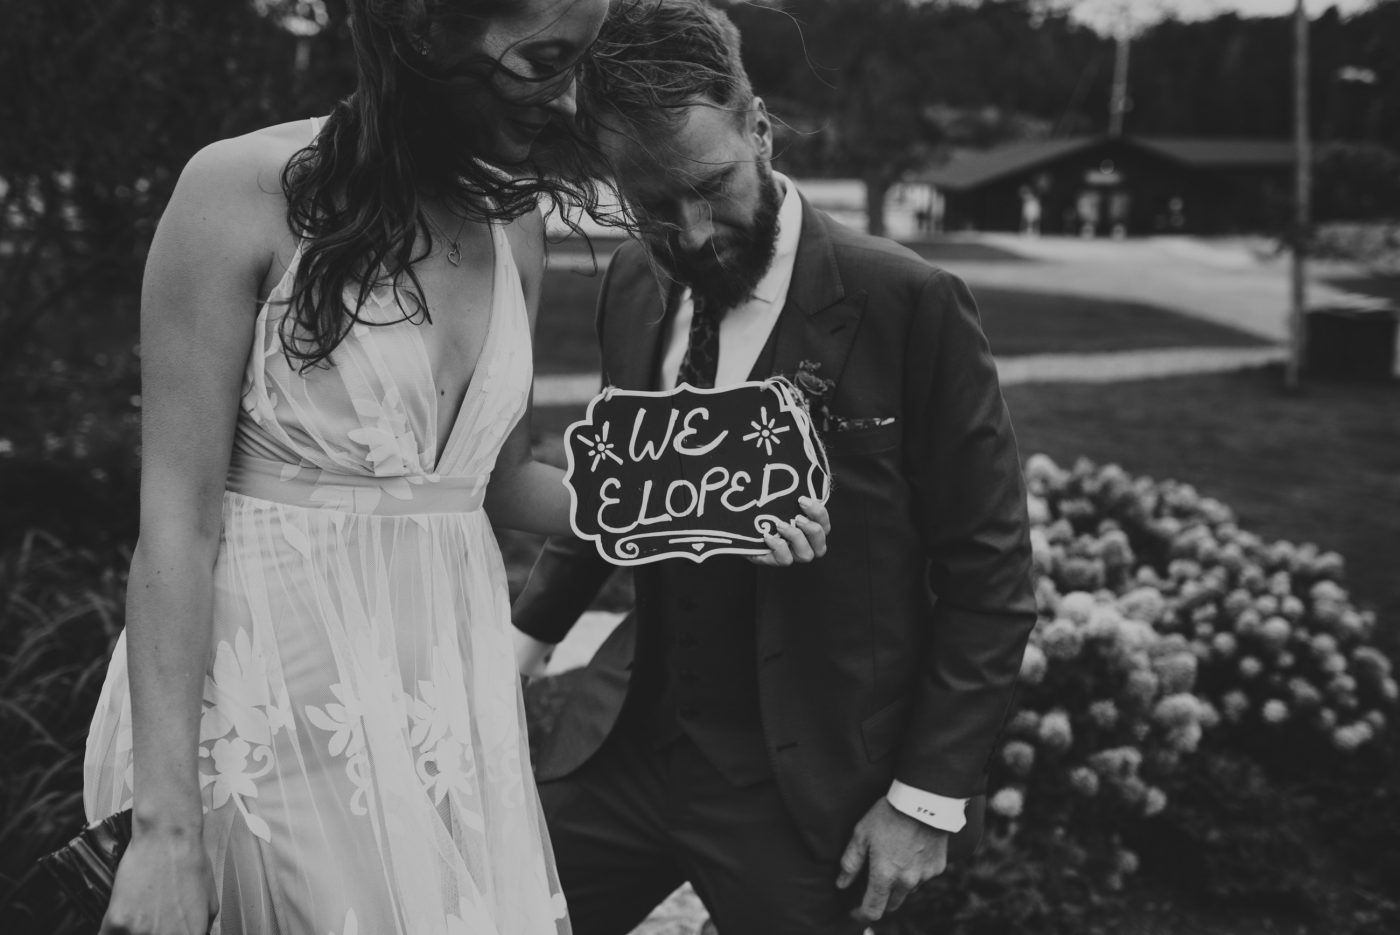 elopement Ontario, bride and groom holding sign 'we eloped'